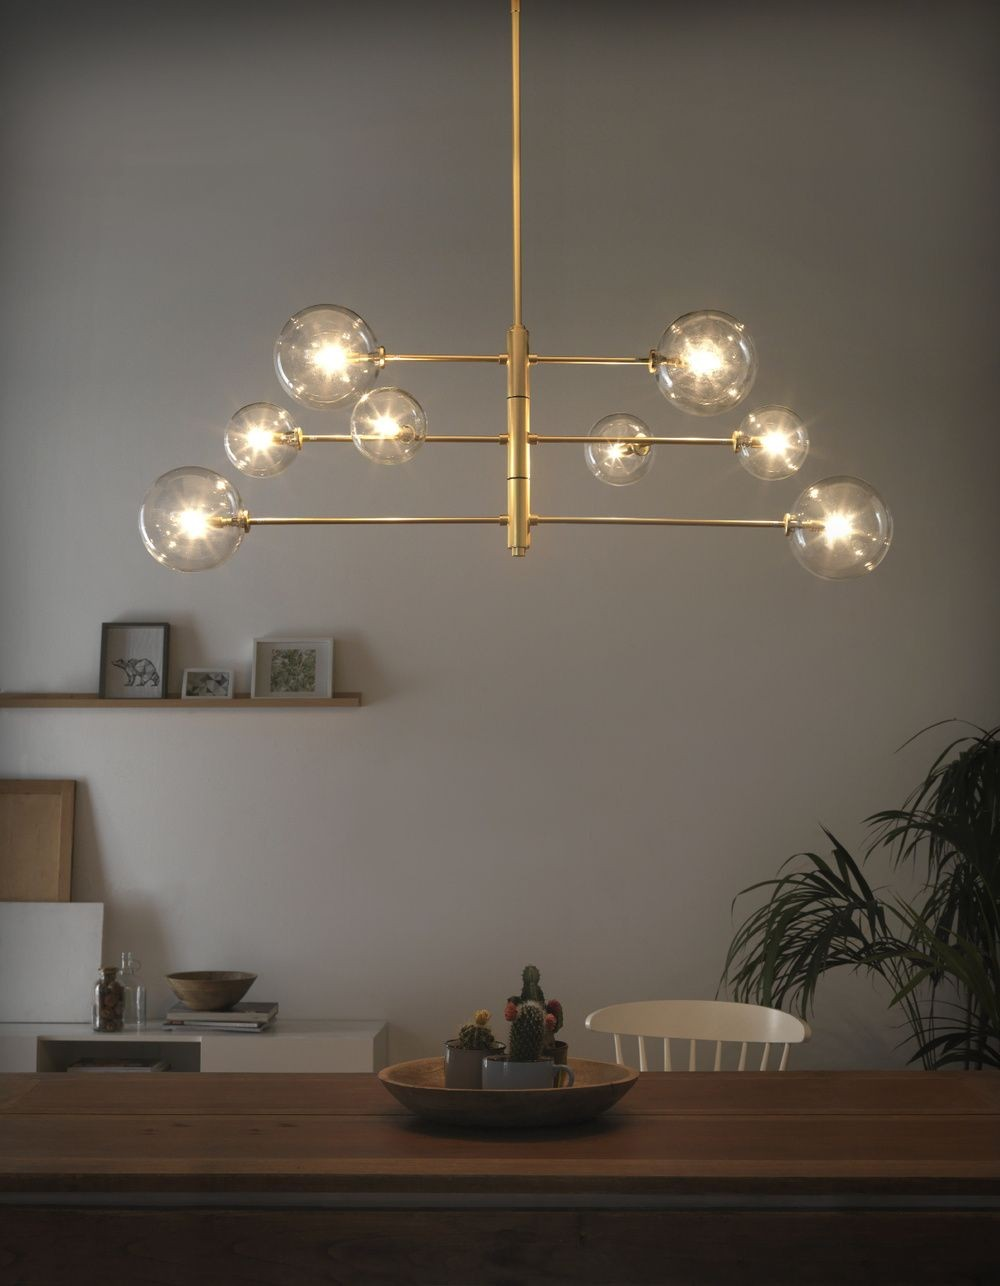 Improve Your Home Decoration With Marvelous Lighting Trends For 2020